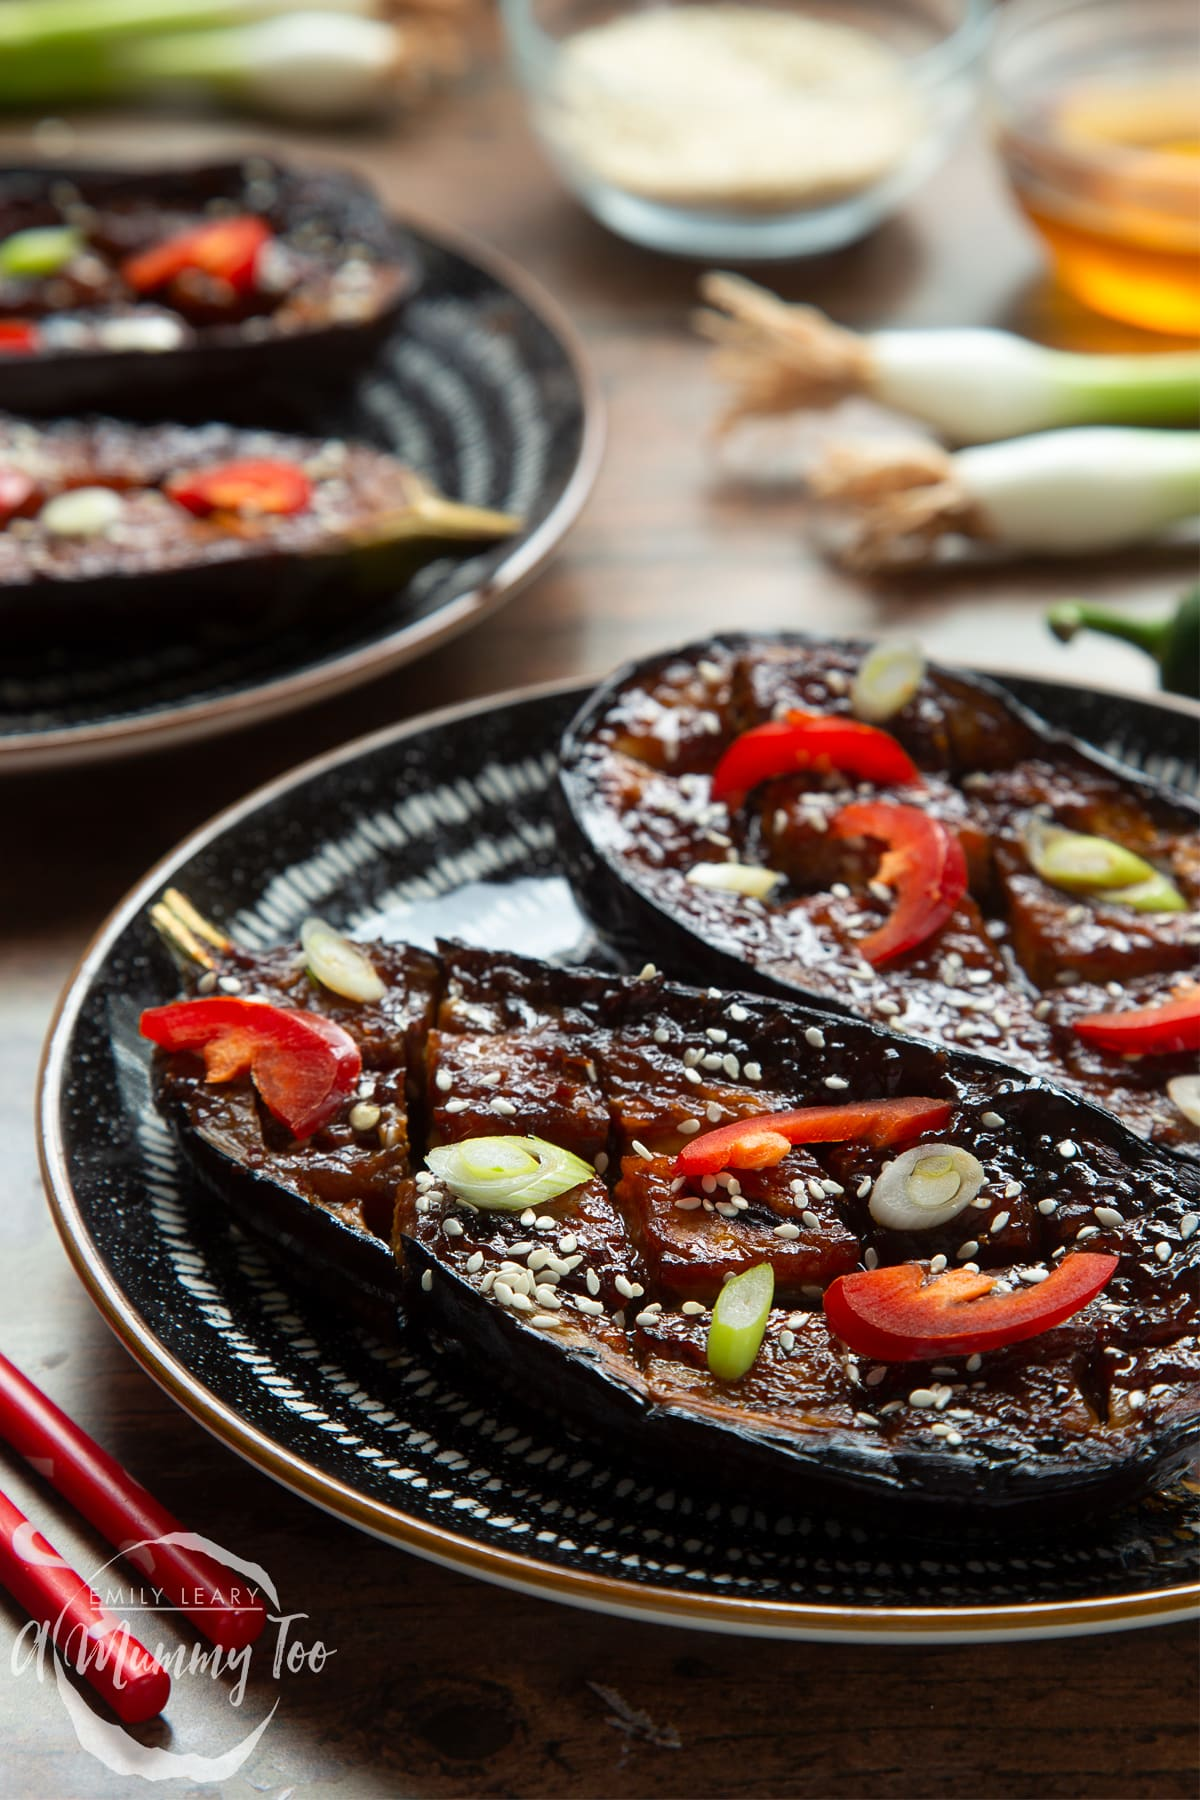 Miso aubergine on a plate, topped with chilli, springs onions and sesame seeds. Another plates shows in the background.